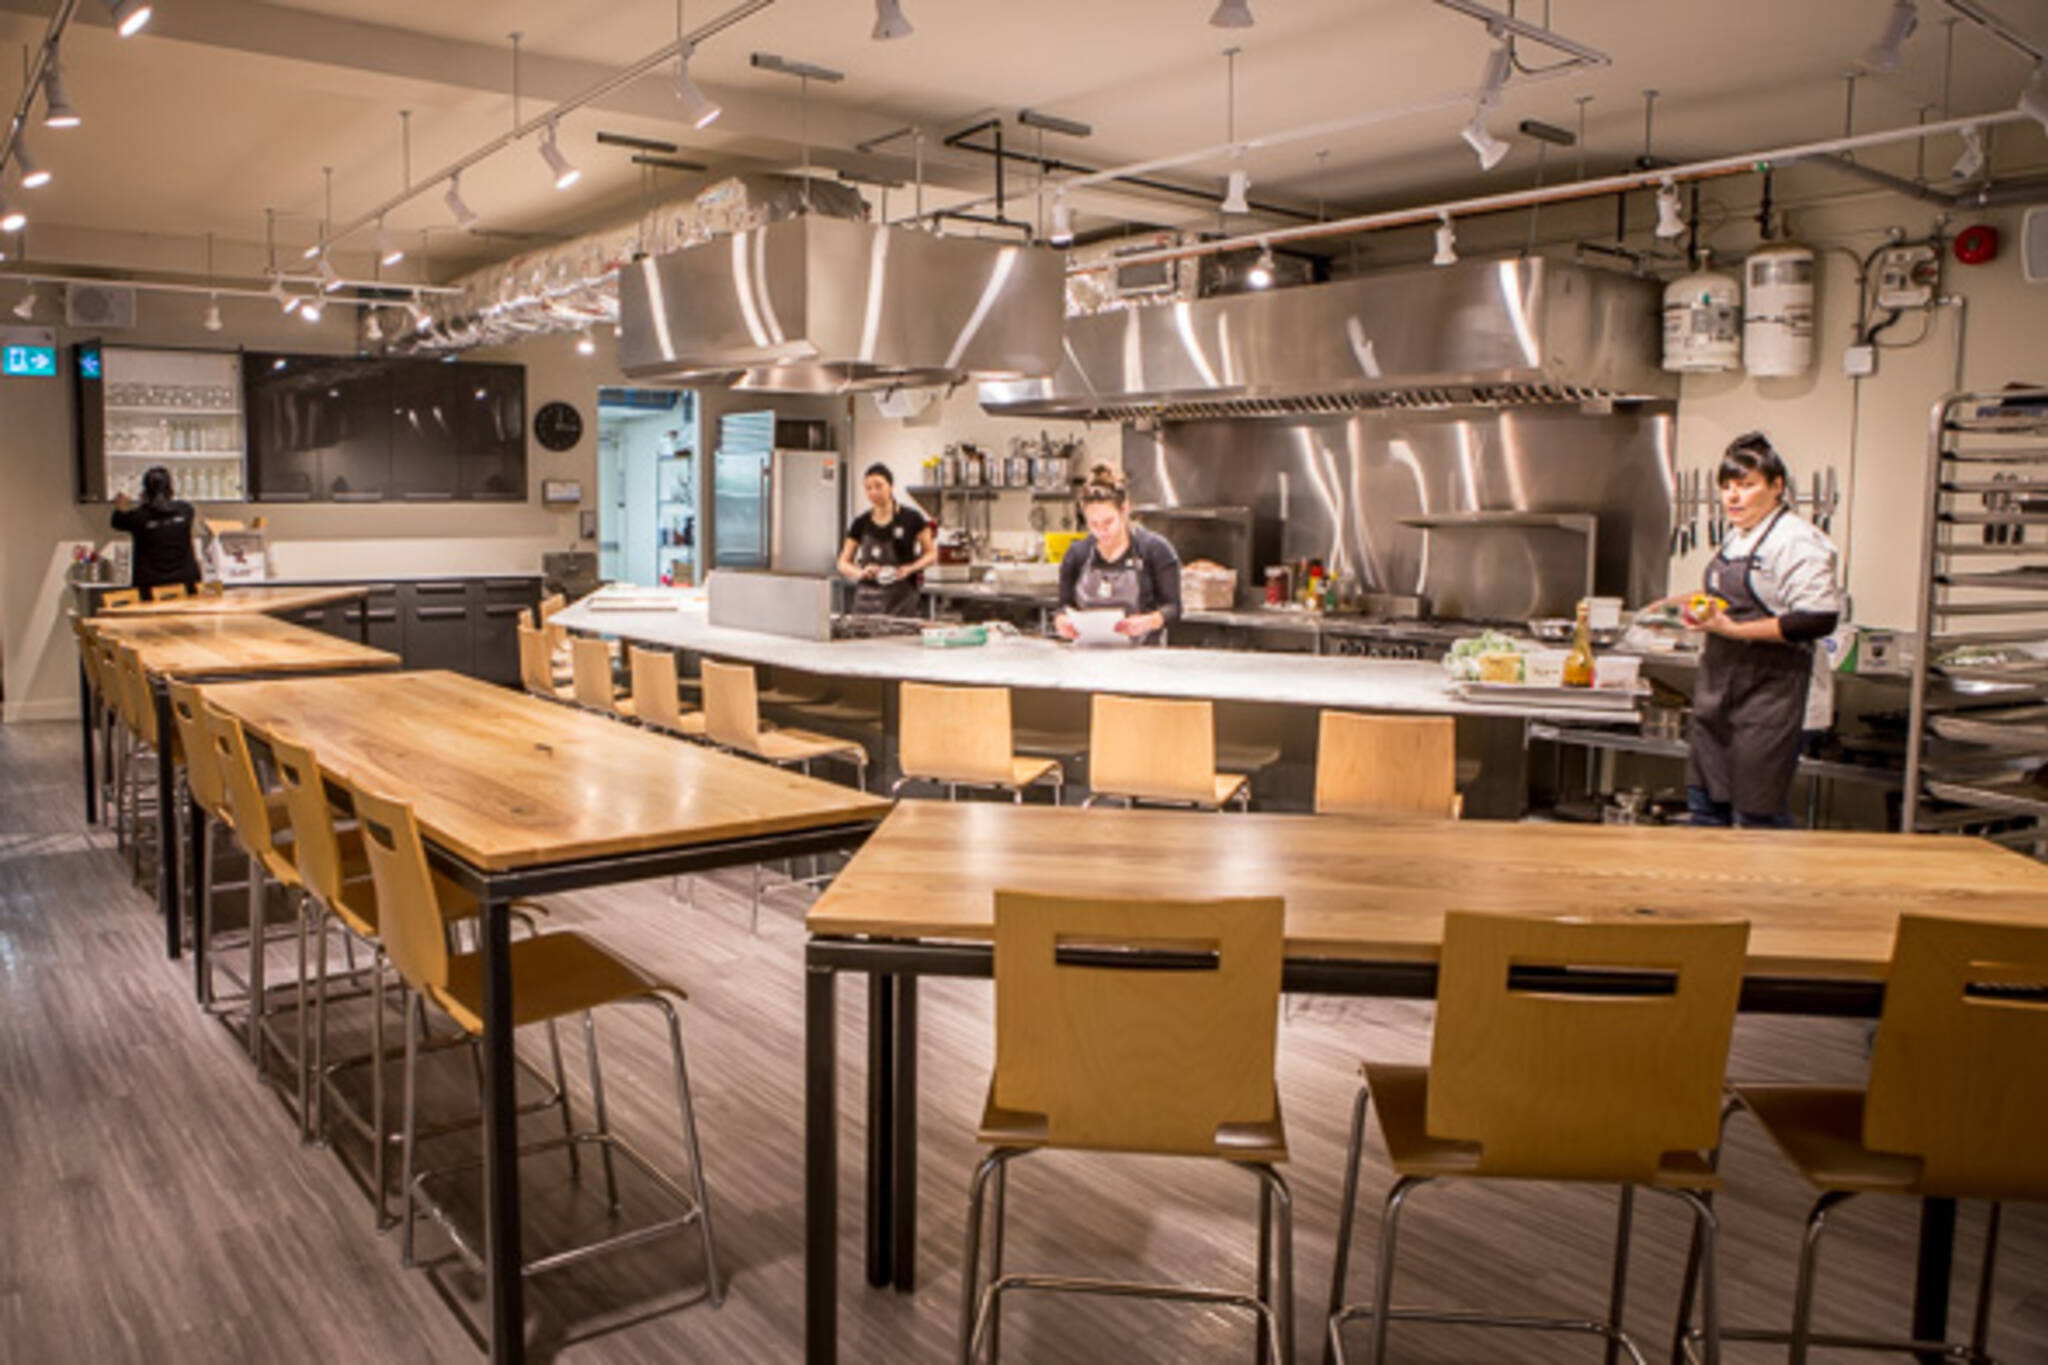 The Best Cooking Classes In Toronto: hia kitchen design course